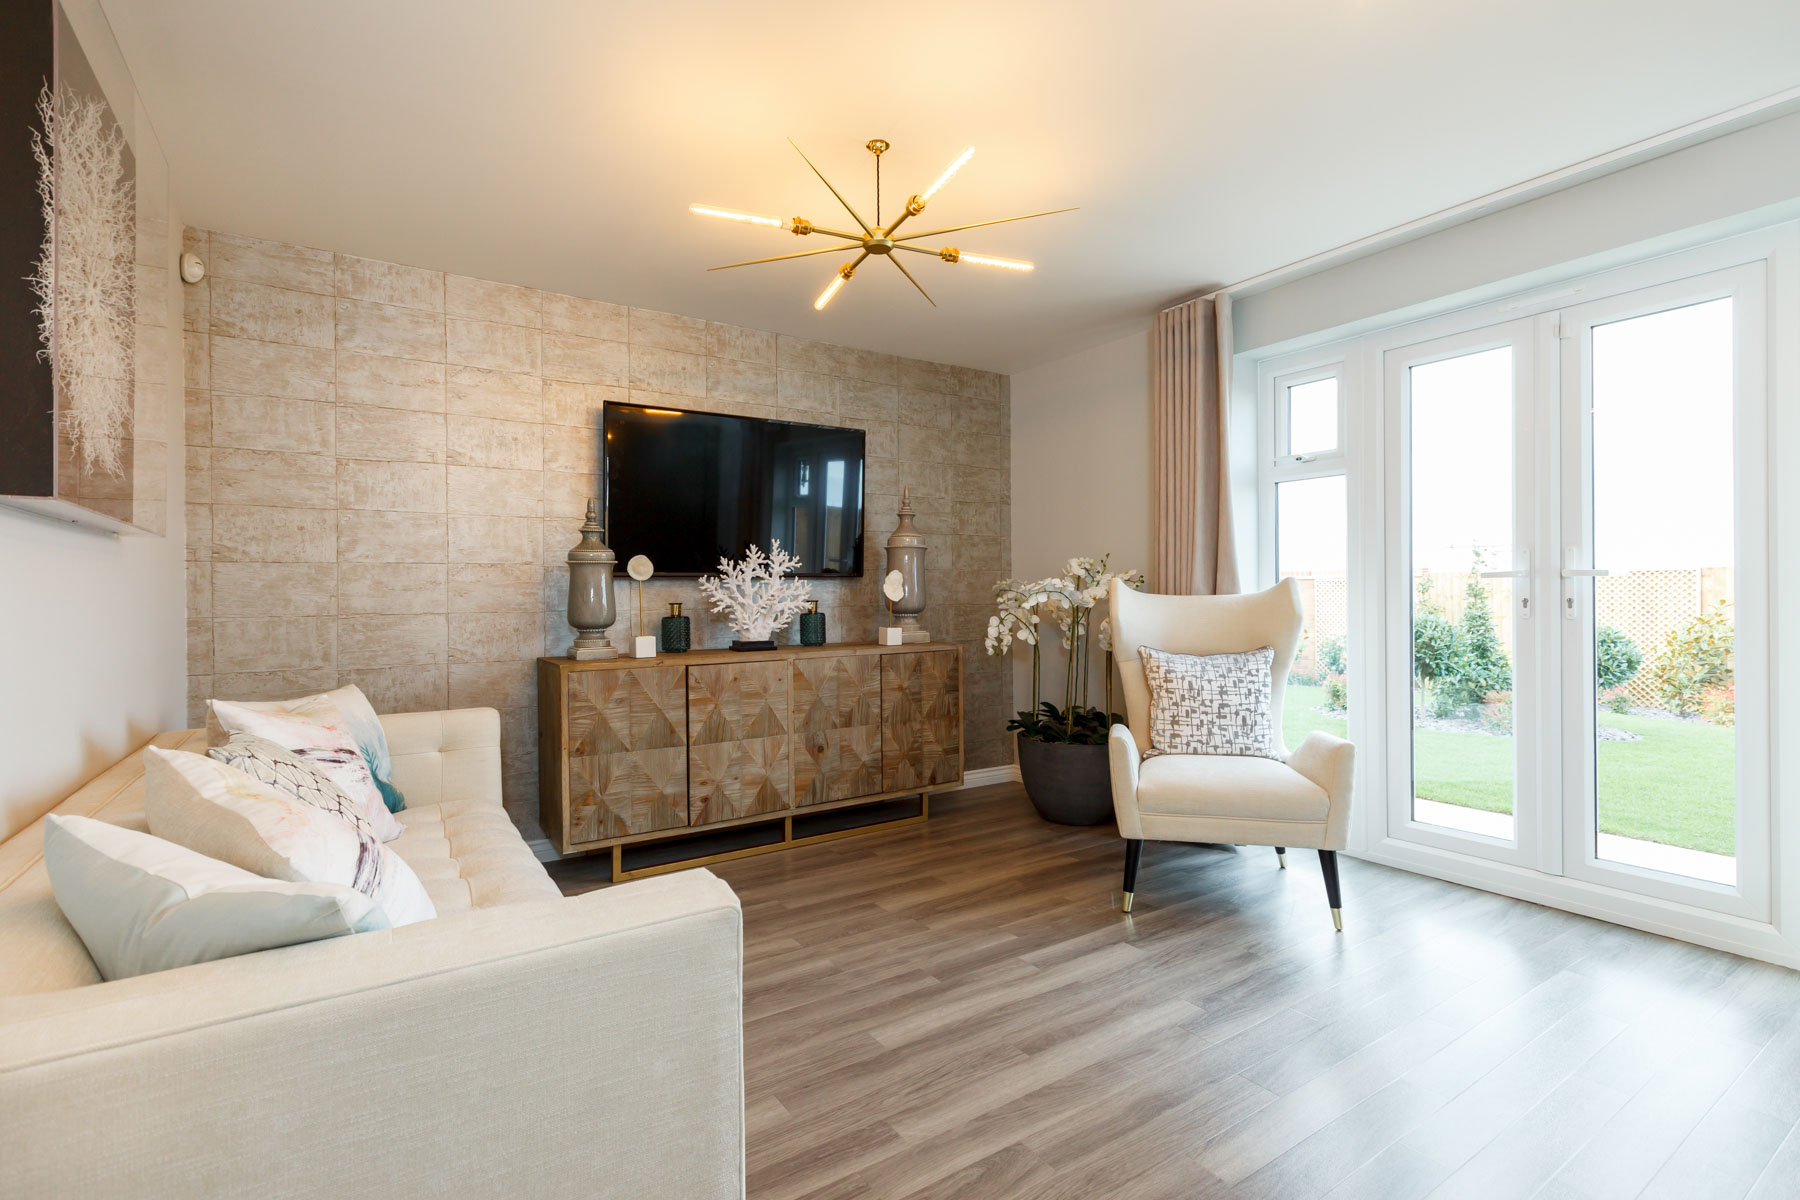 TW Exeter - Mountbatten Mews - Flatford example living room